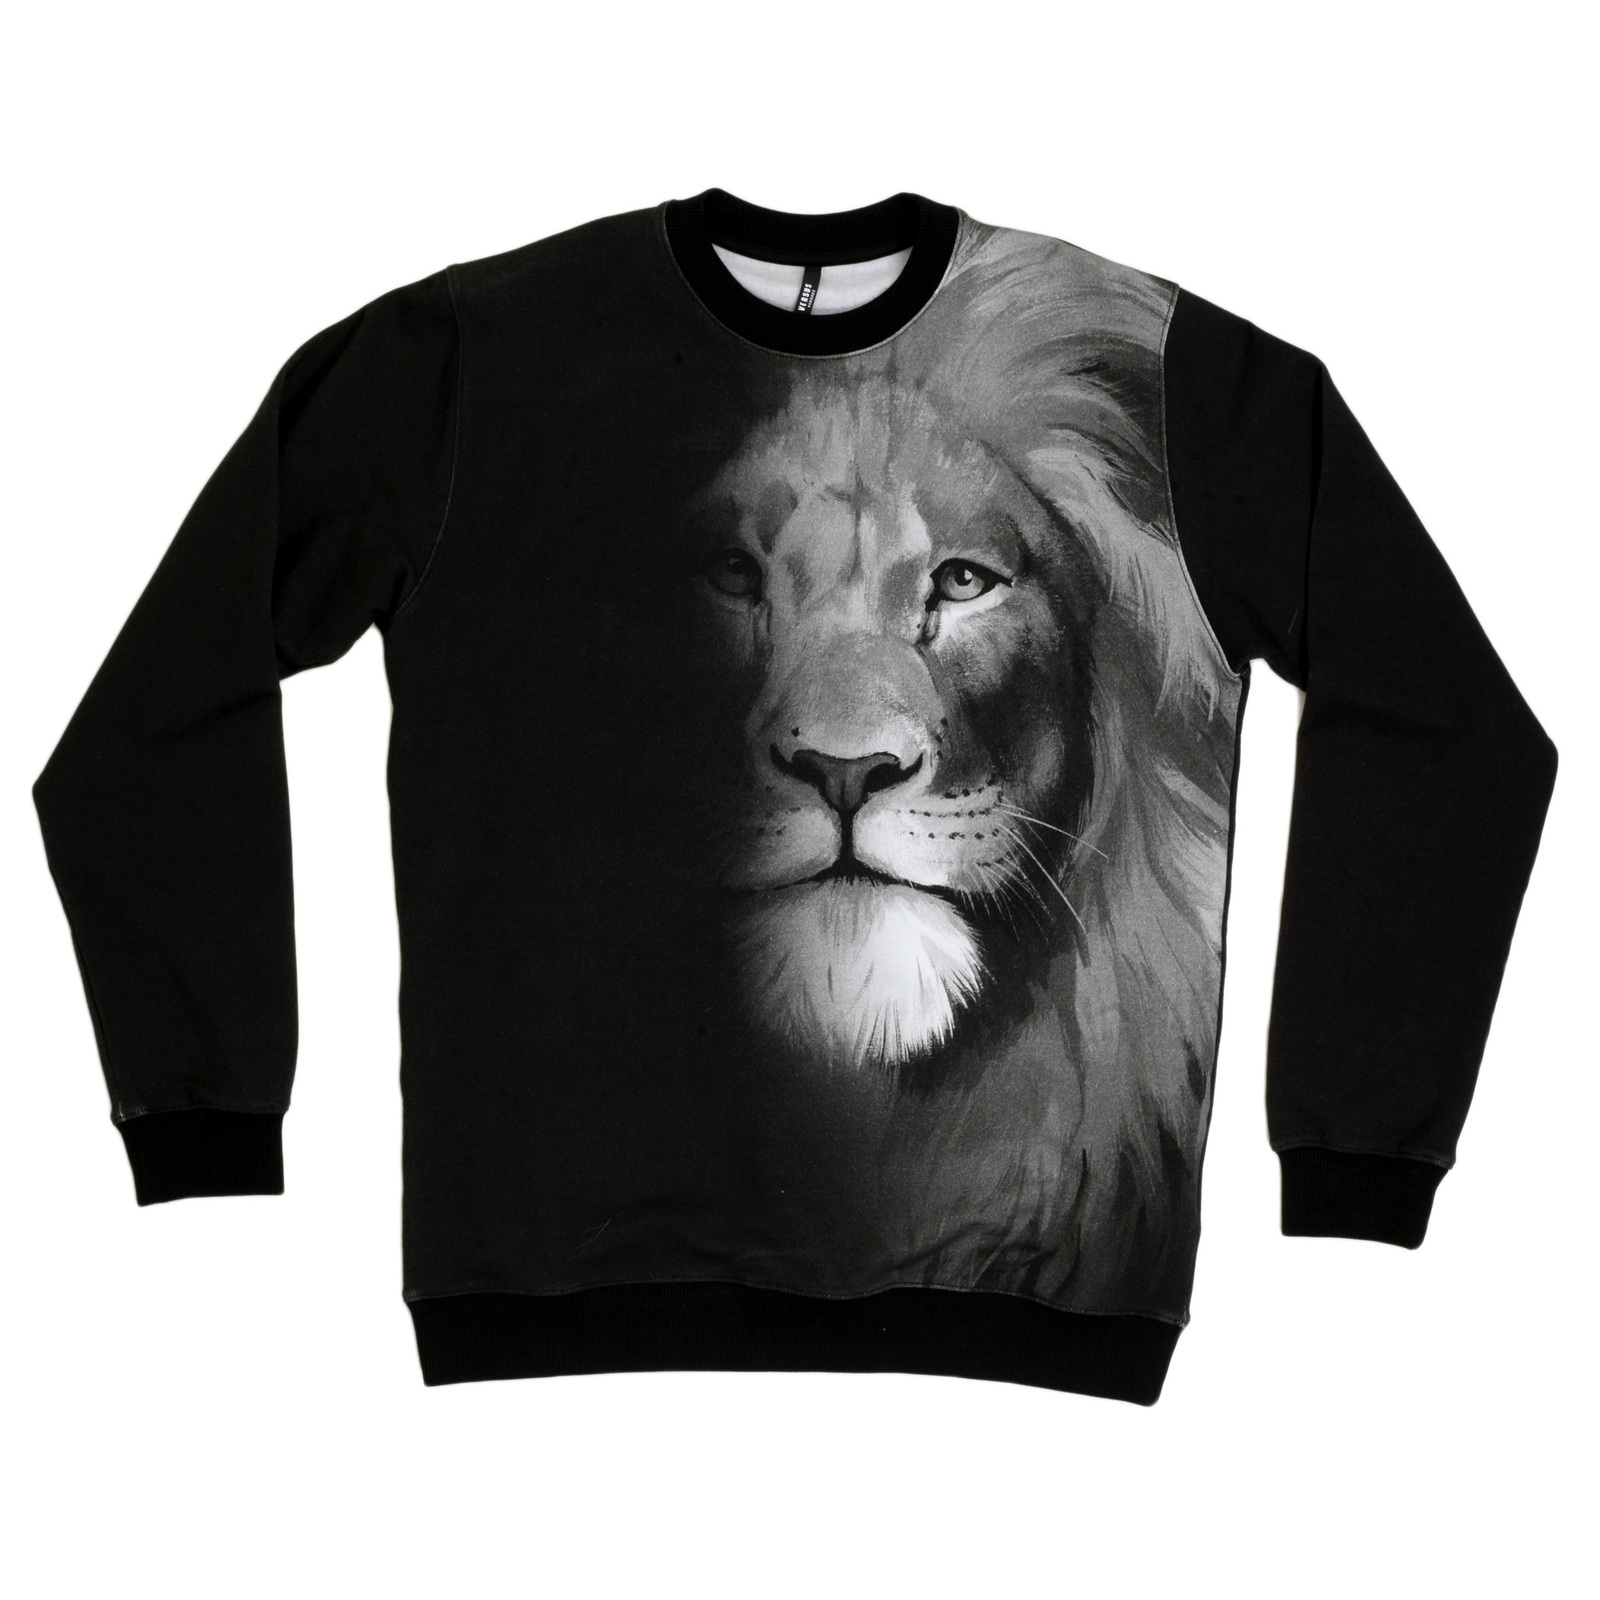 05860177 Beautiful Lion Head Photo Printed Mens Sweatshirt by Versace UK